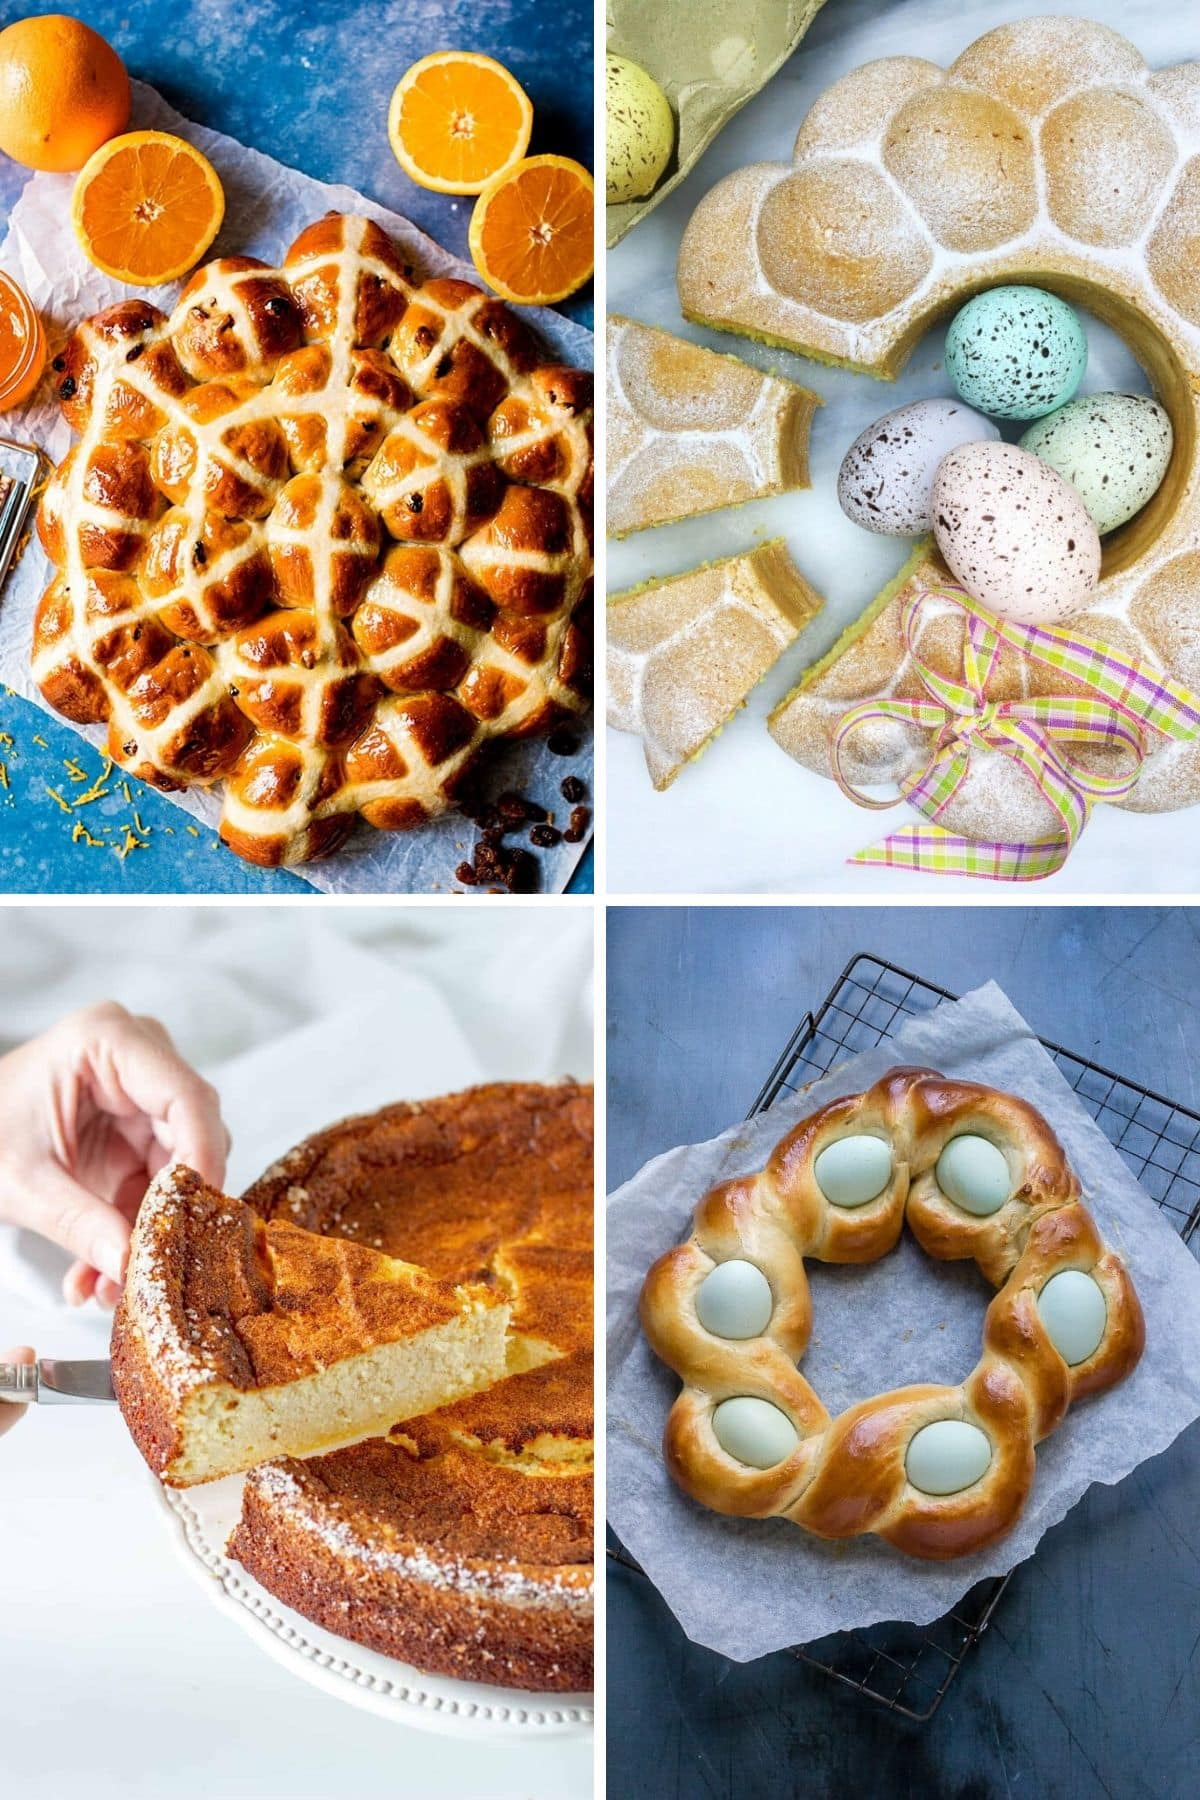 Collage of four types of baked goods that could be served at Easter brunch.